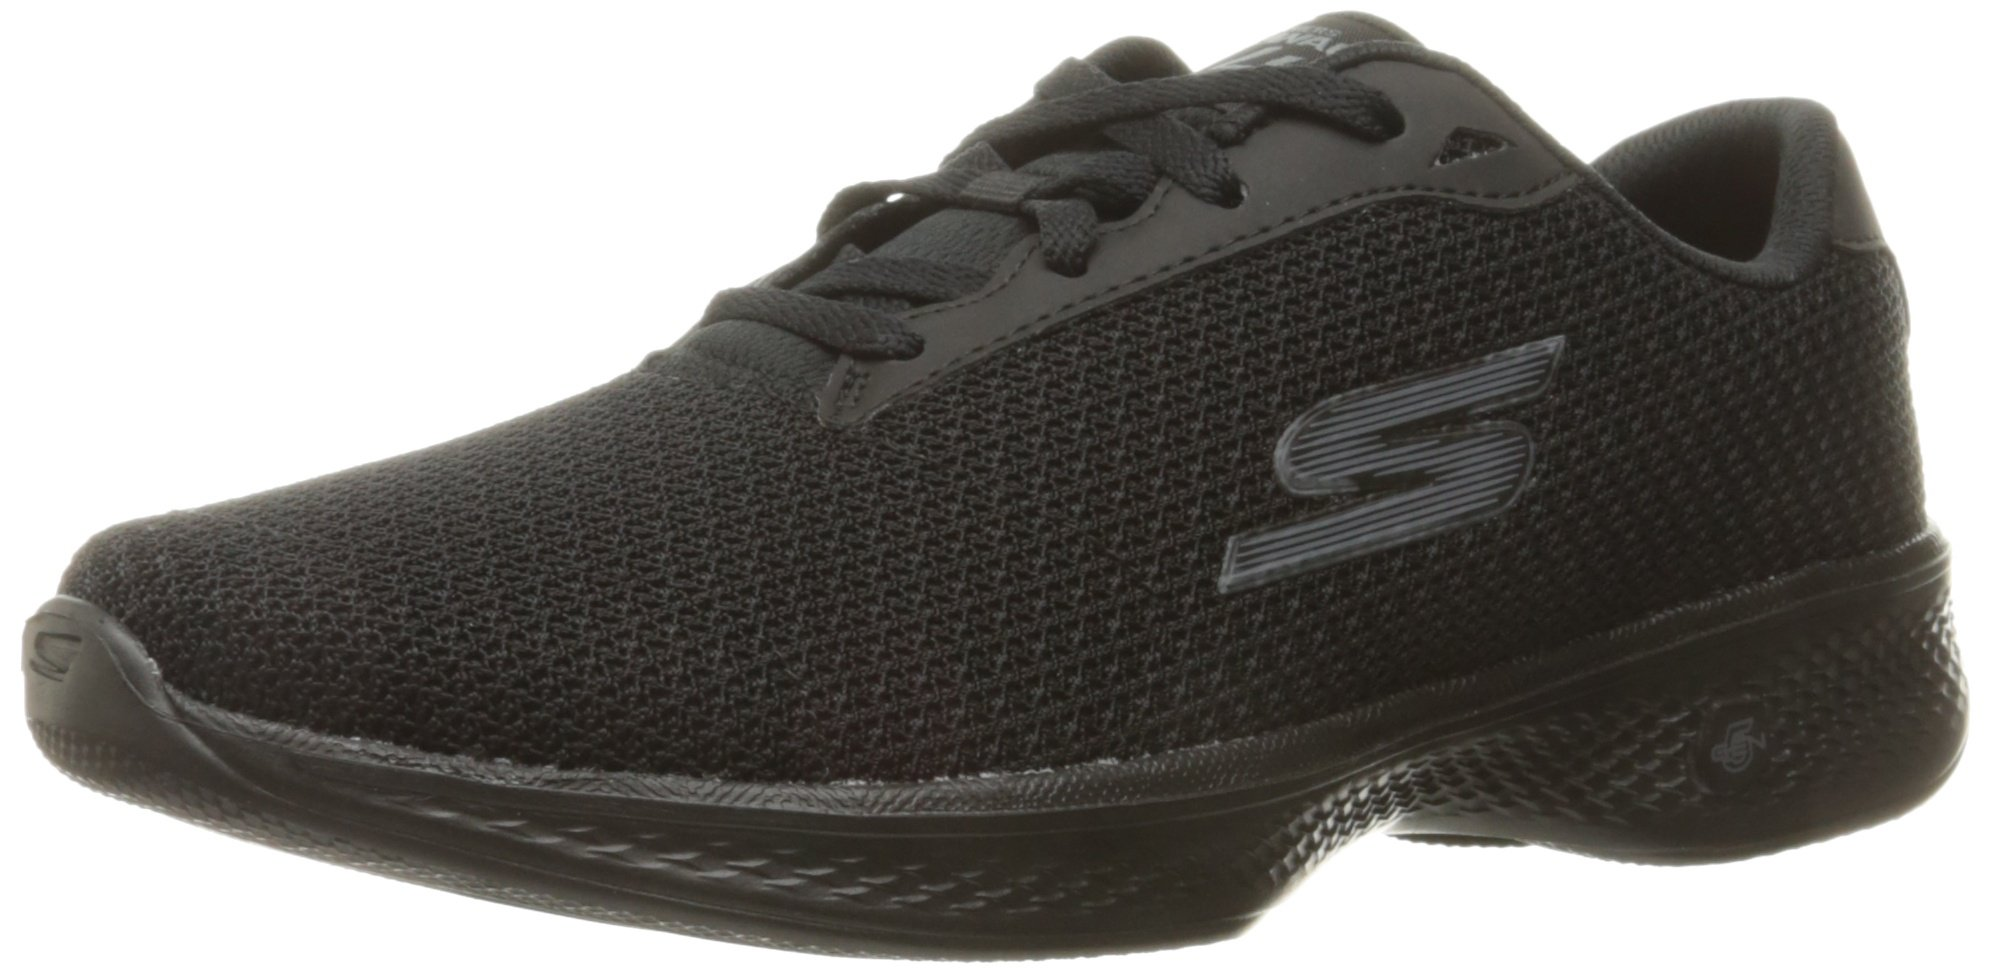 Skechers Performance Women's Go Walk 4 Glorify Walking Shoe, Black, 8 M US